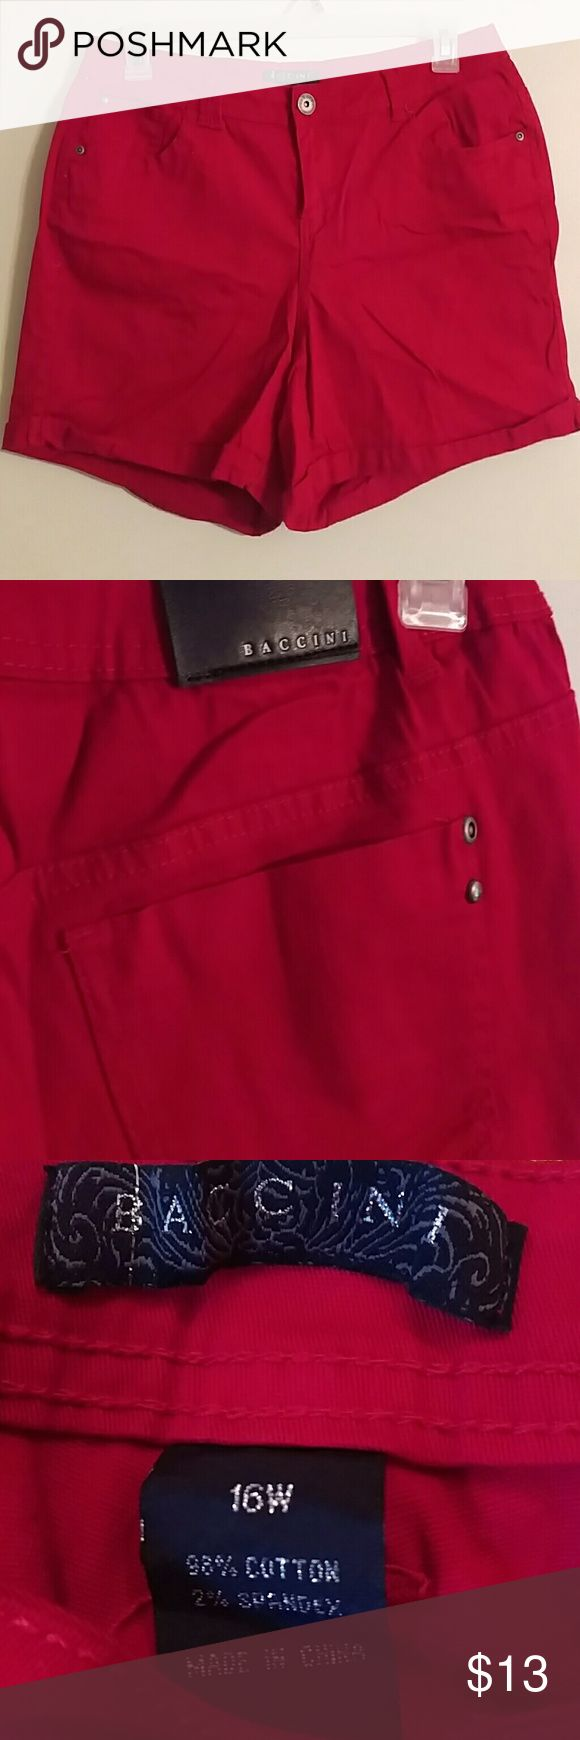 Red Jean shorts Women's red shorts size 16W Shorts Jean Shorts